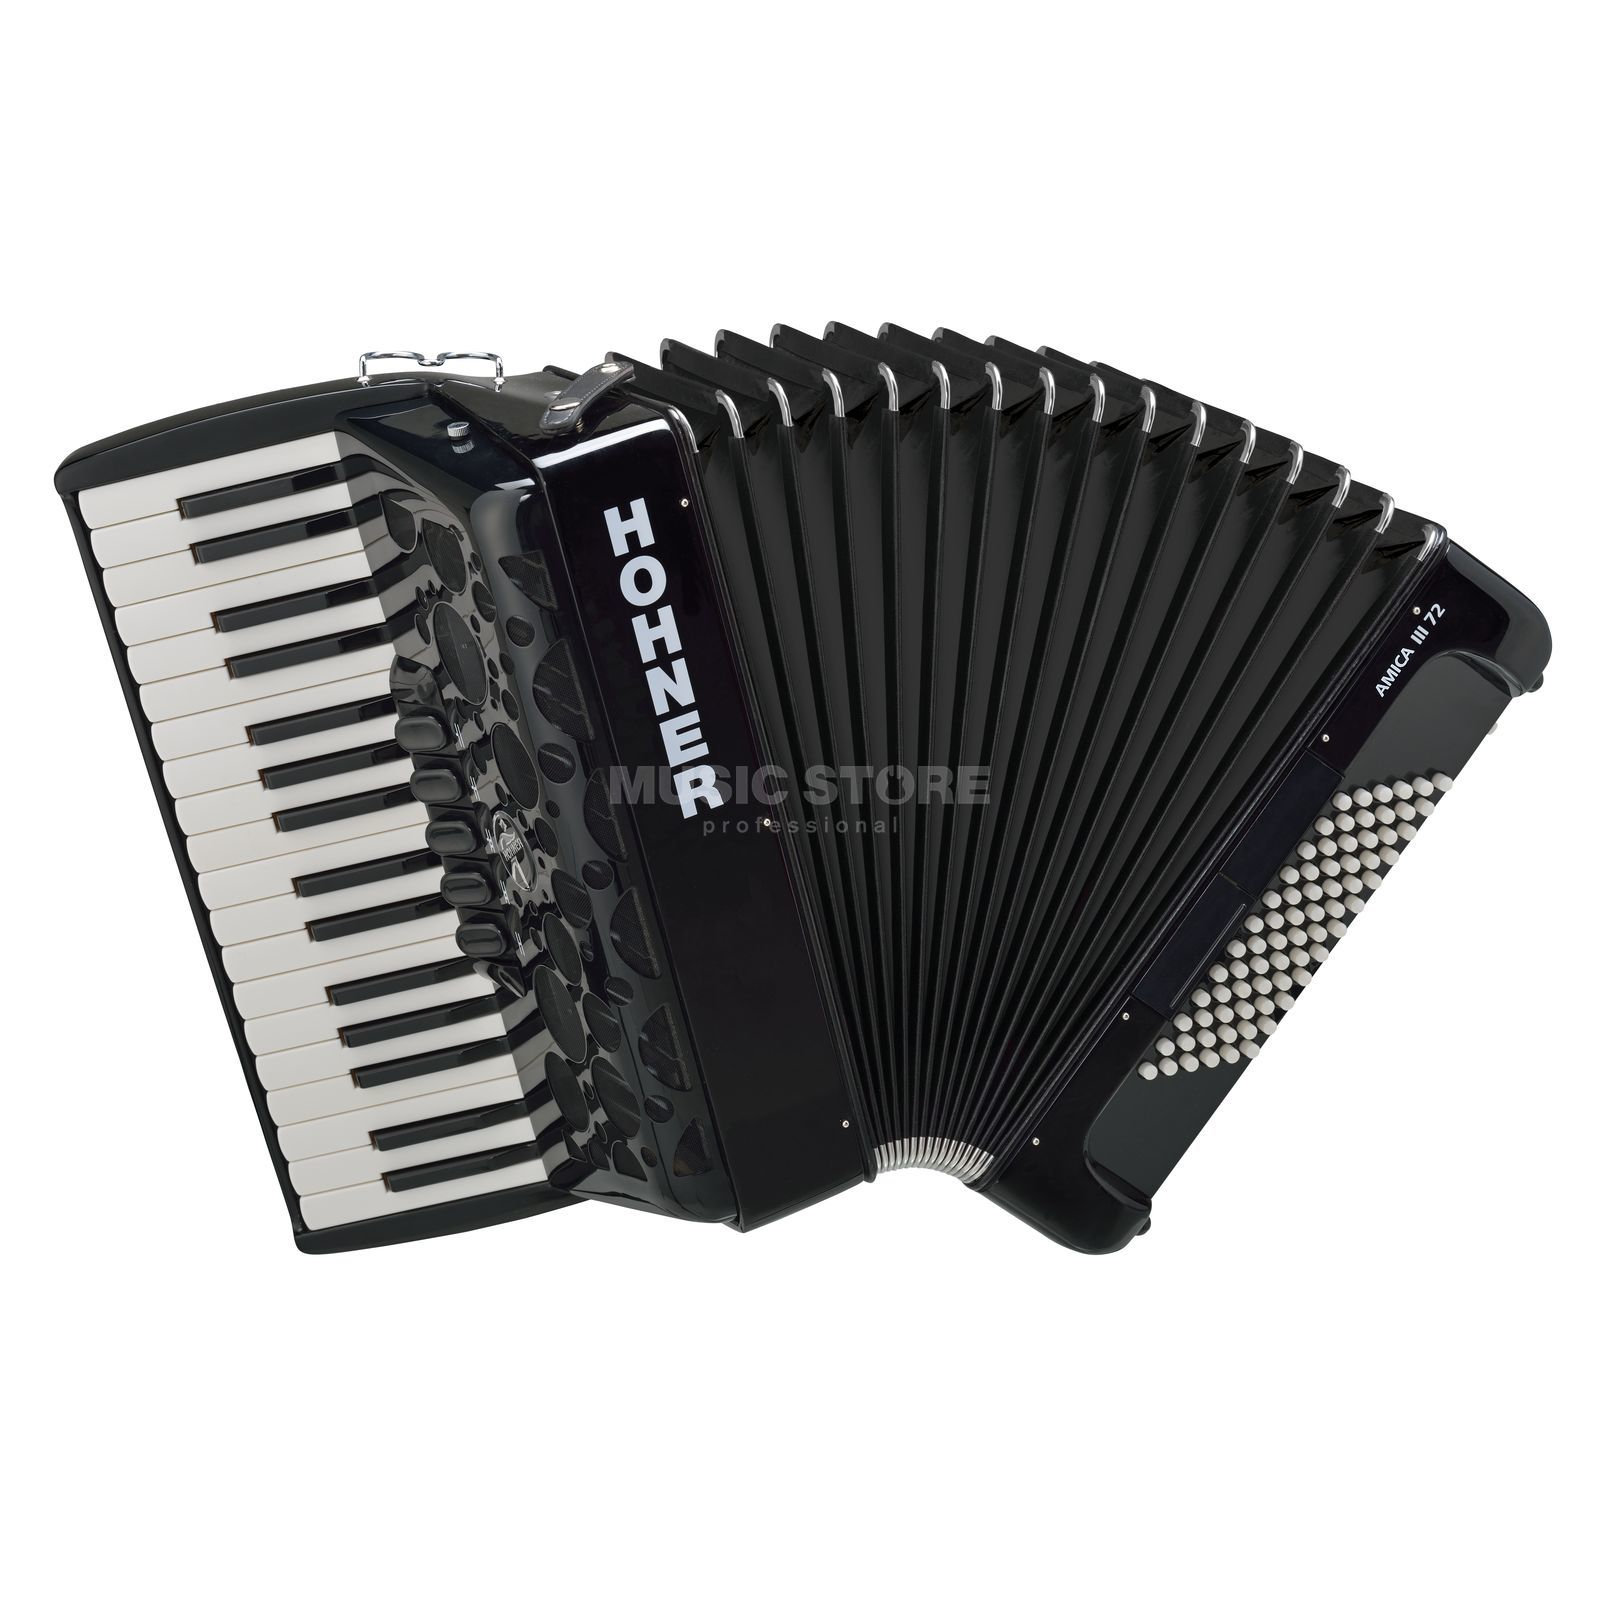 Hohner Accordion Piano Style Amica 72 basses, III choirs, black Produktbillede